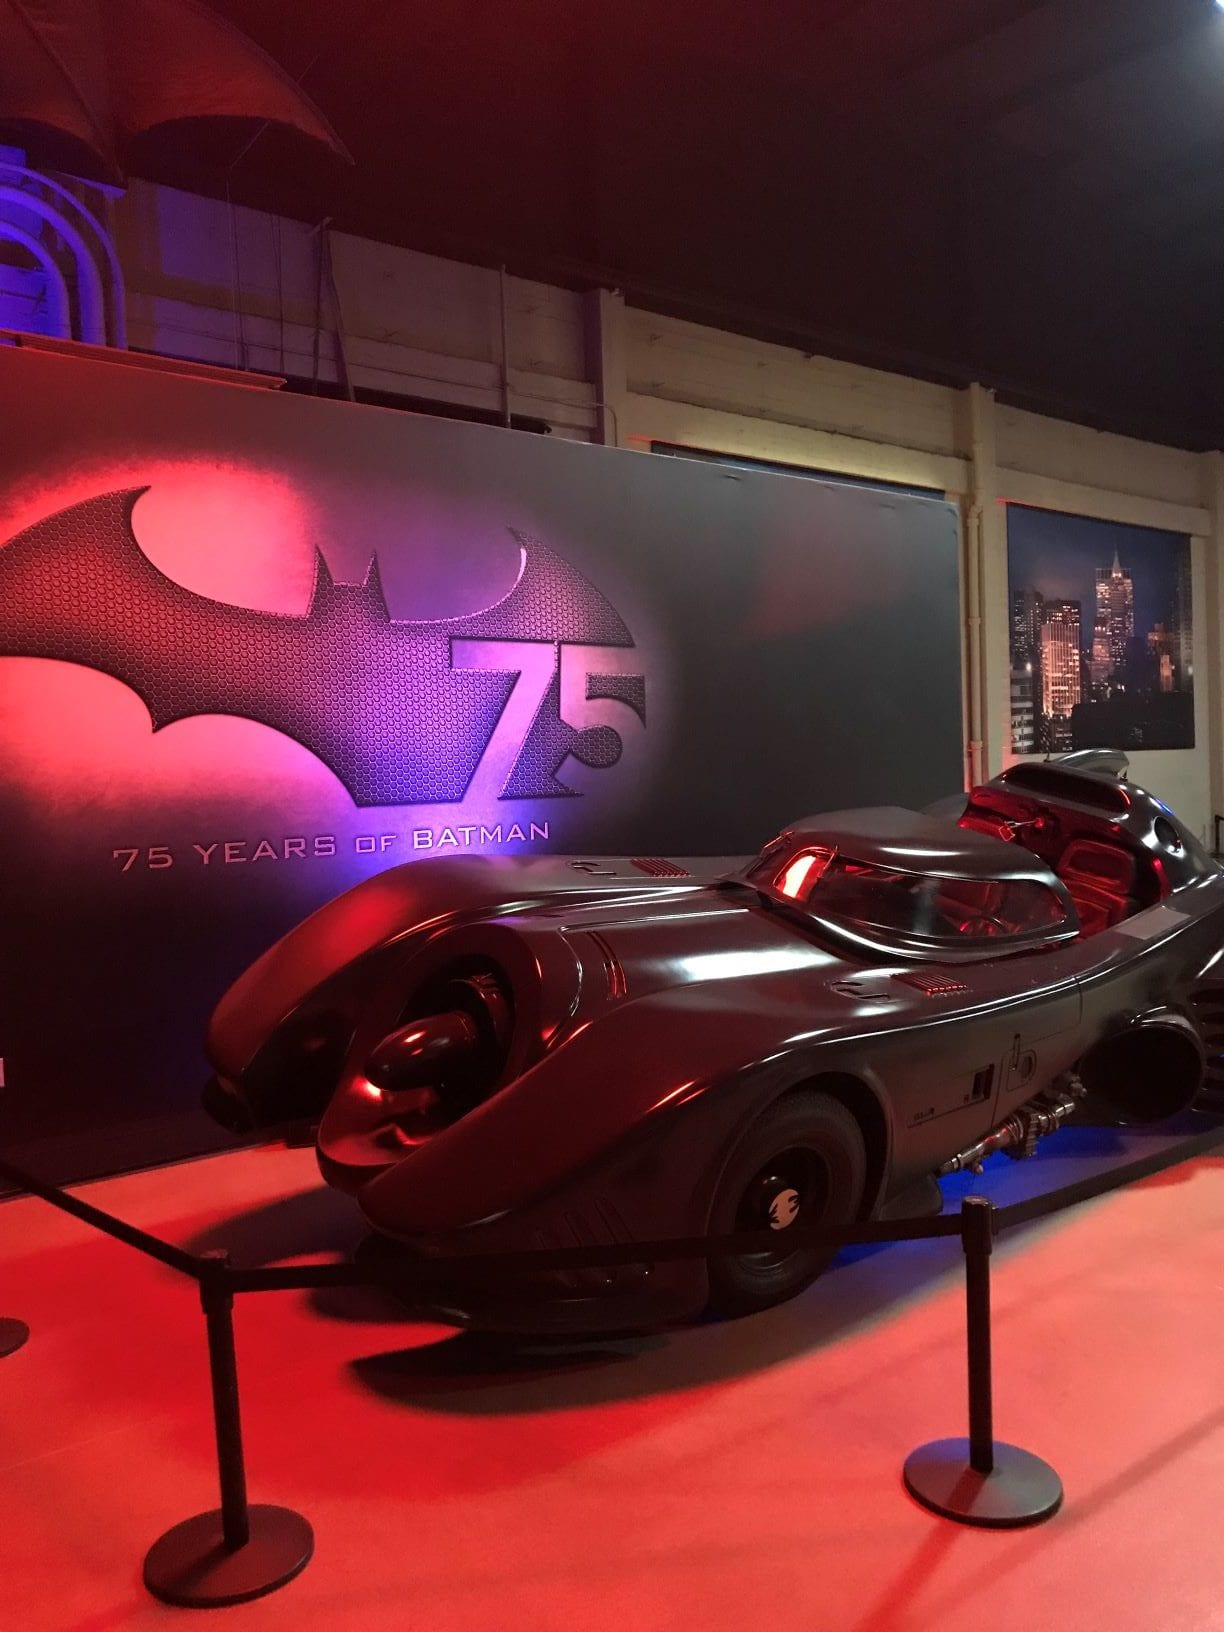 Up close and personal with the vehicles from the Batman movie franchise